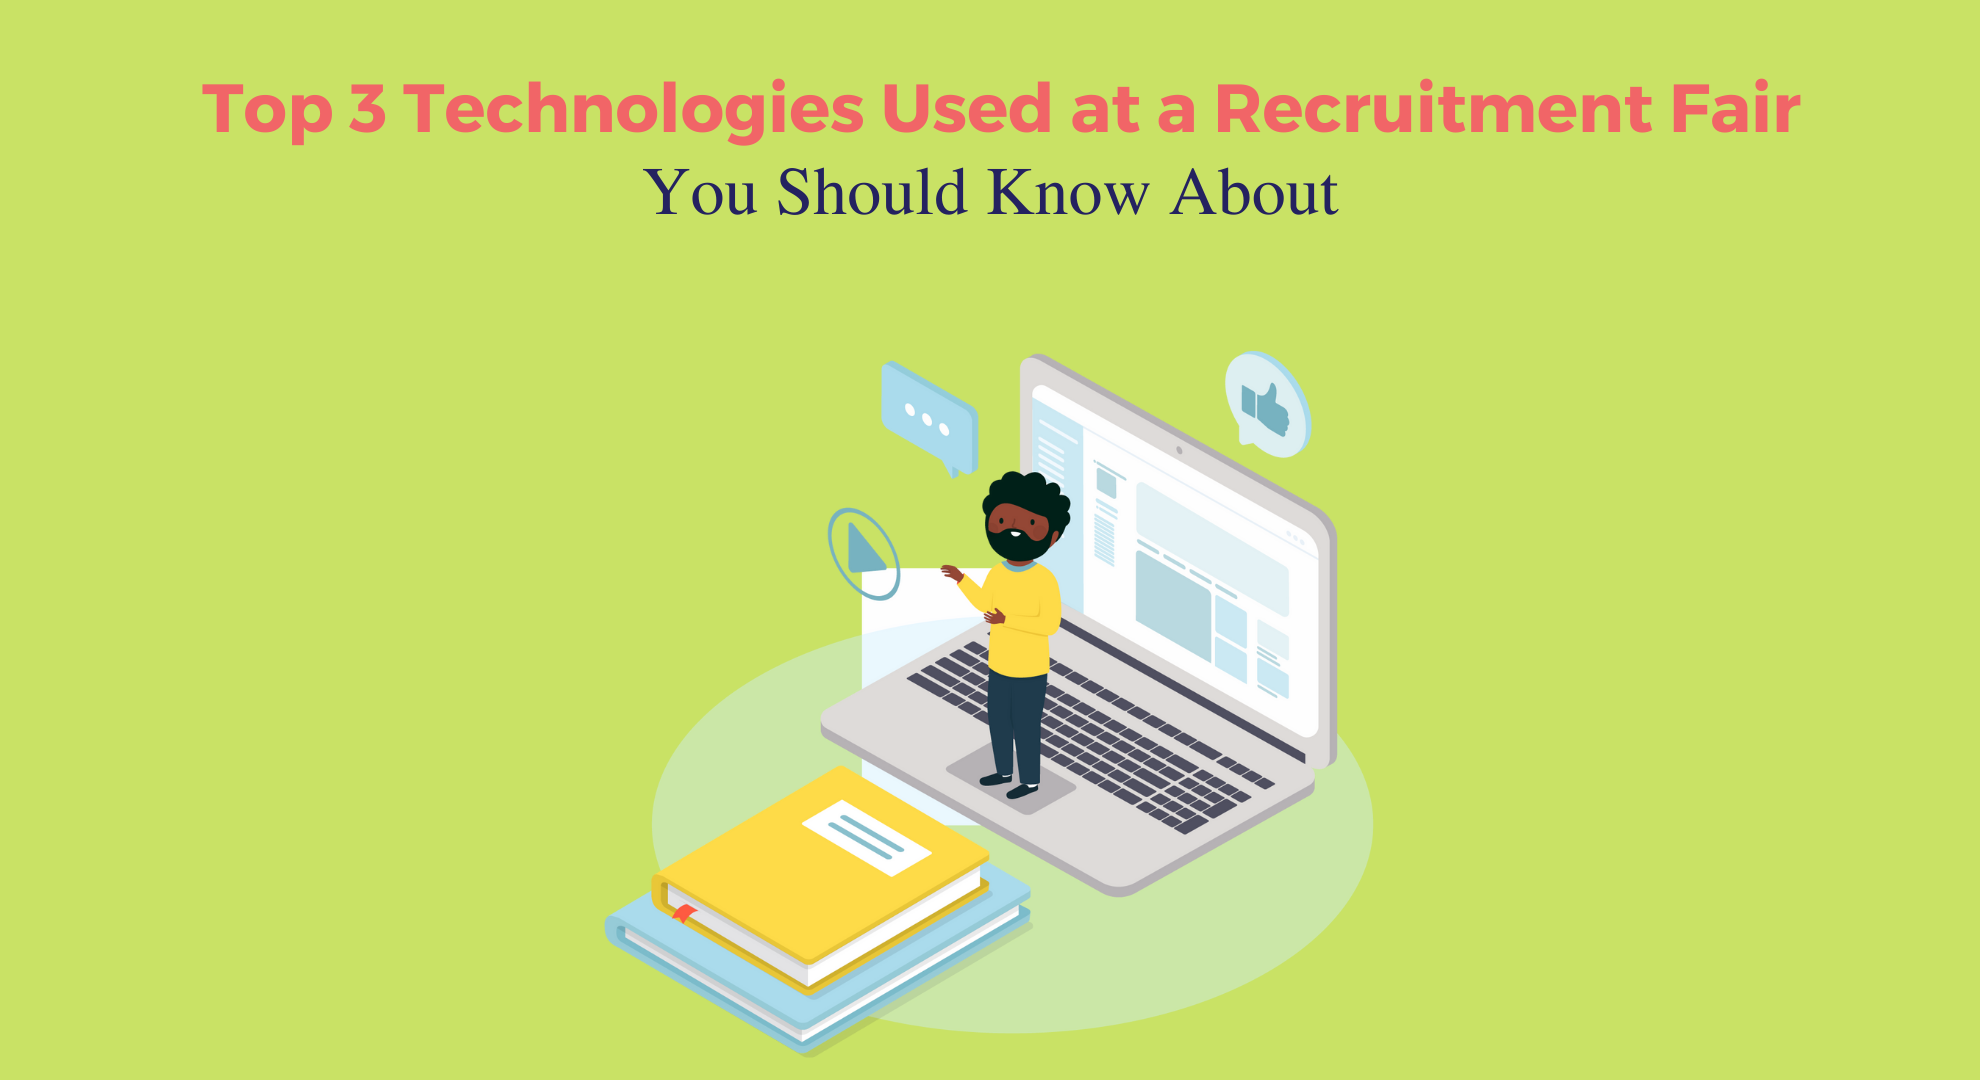 Top 3 Technologies Used at a Recruitment Fair You Should Know About